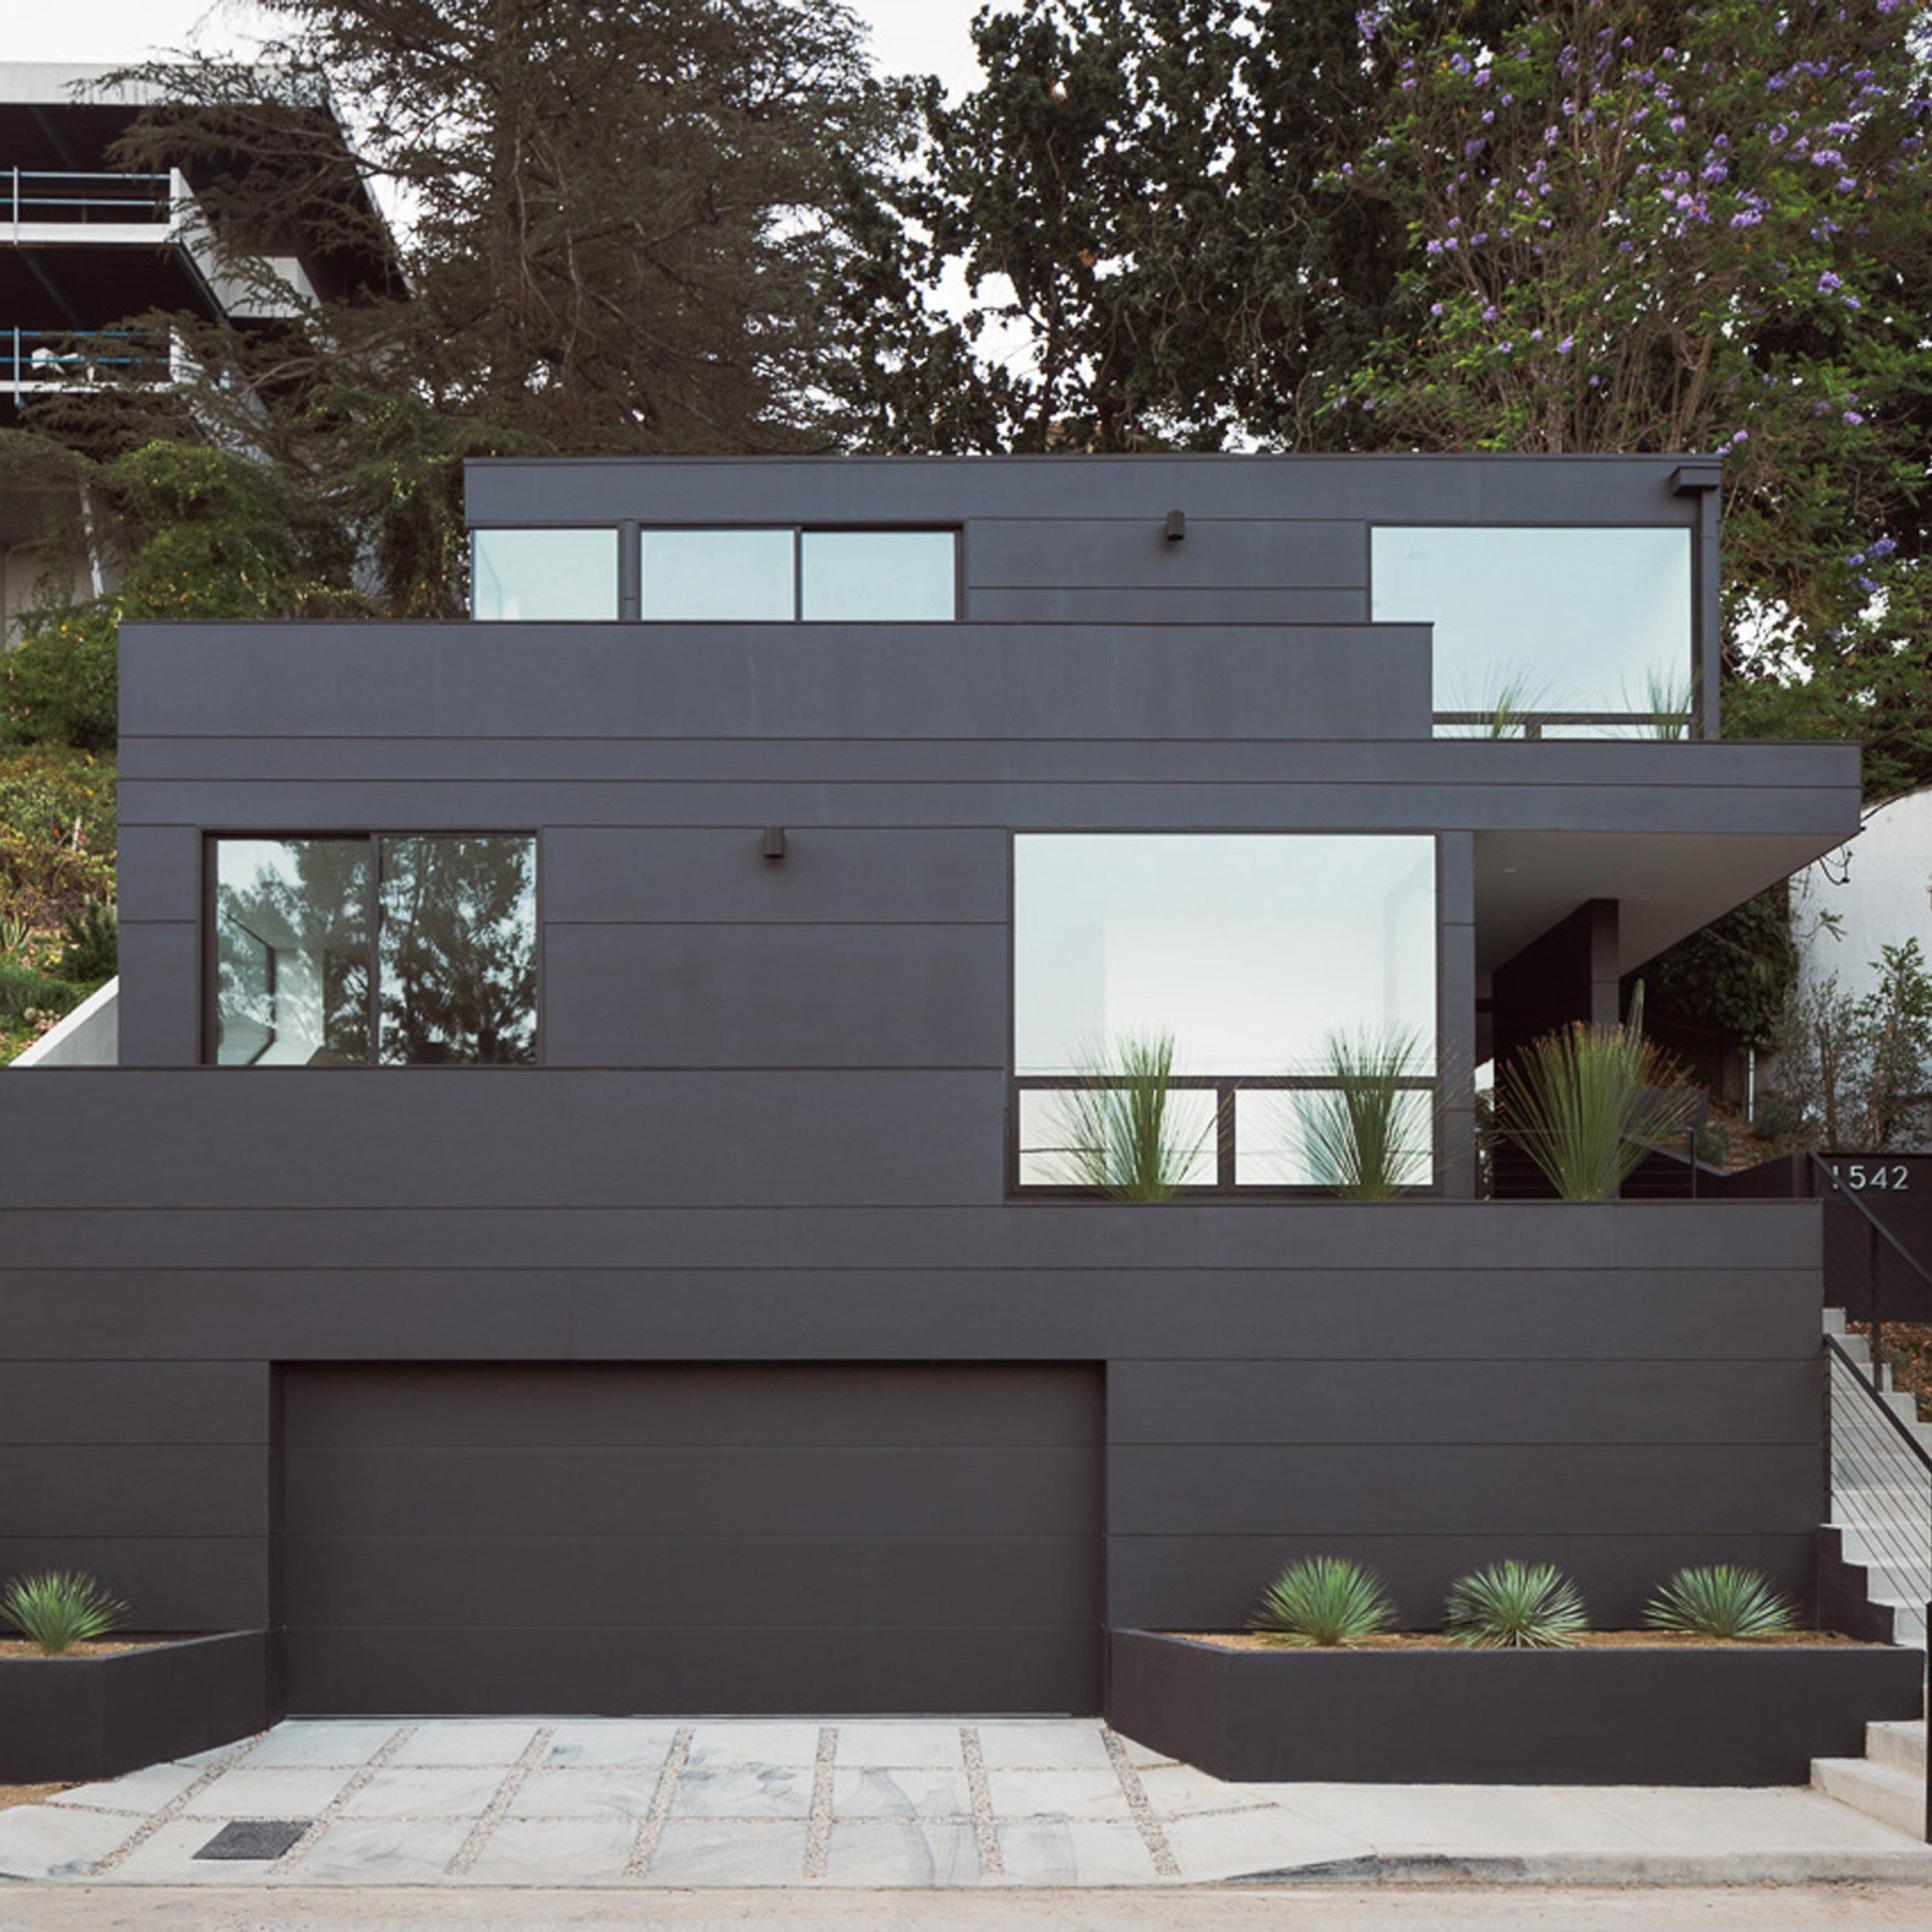 Portfolio Modern Home Design: Stacked Volumes Form Los Angeles Hilltop Home By Aaron